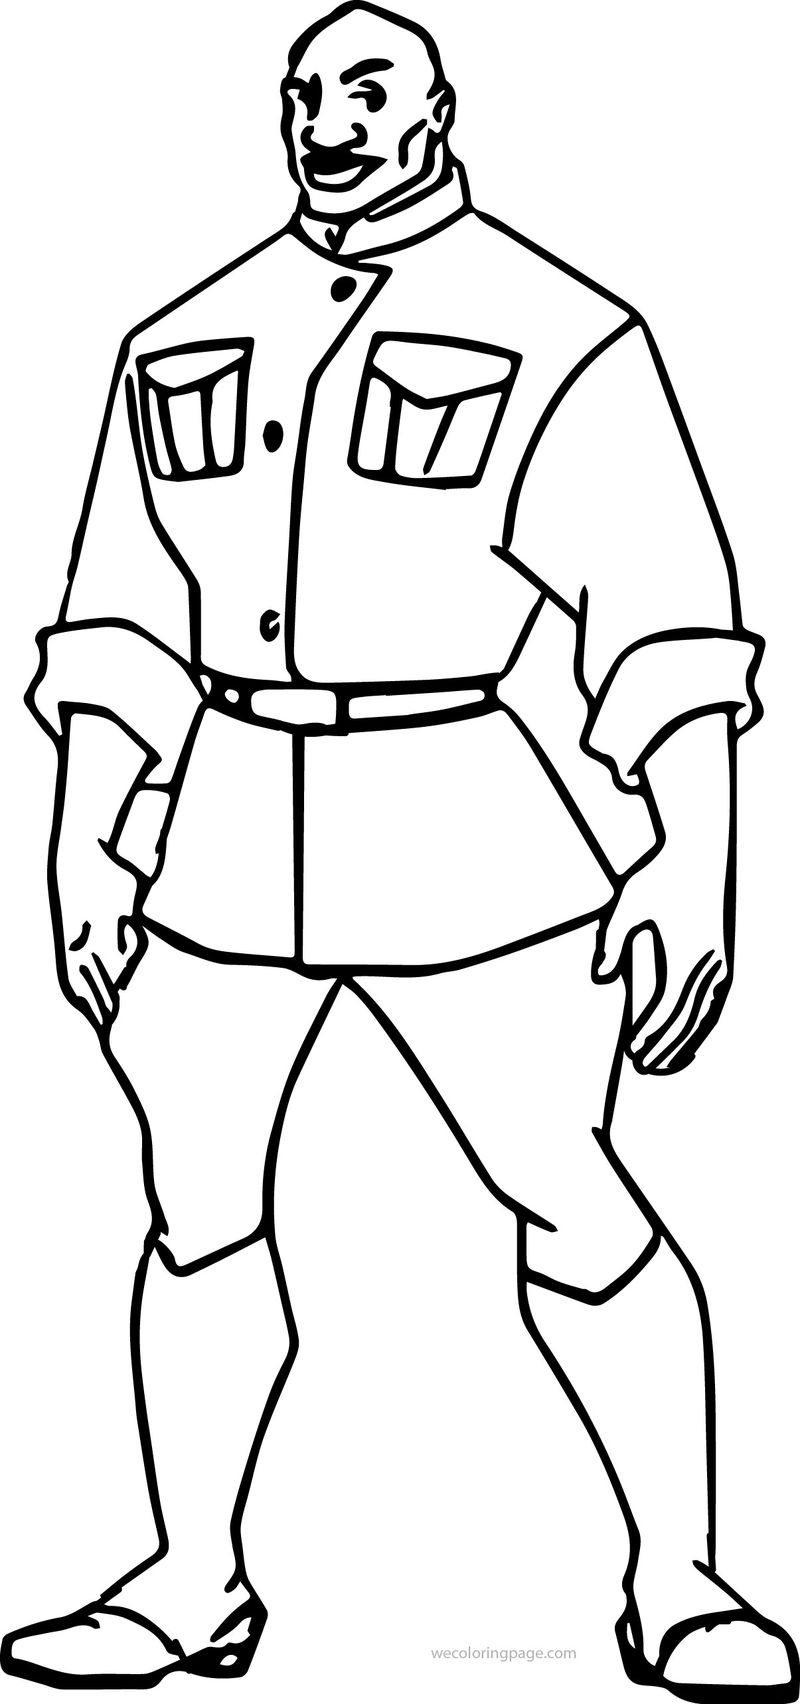 Atlantis The Lost Empire Dr Sweet Soldier Coloring Page